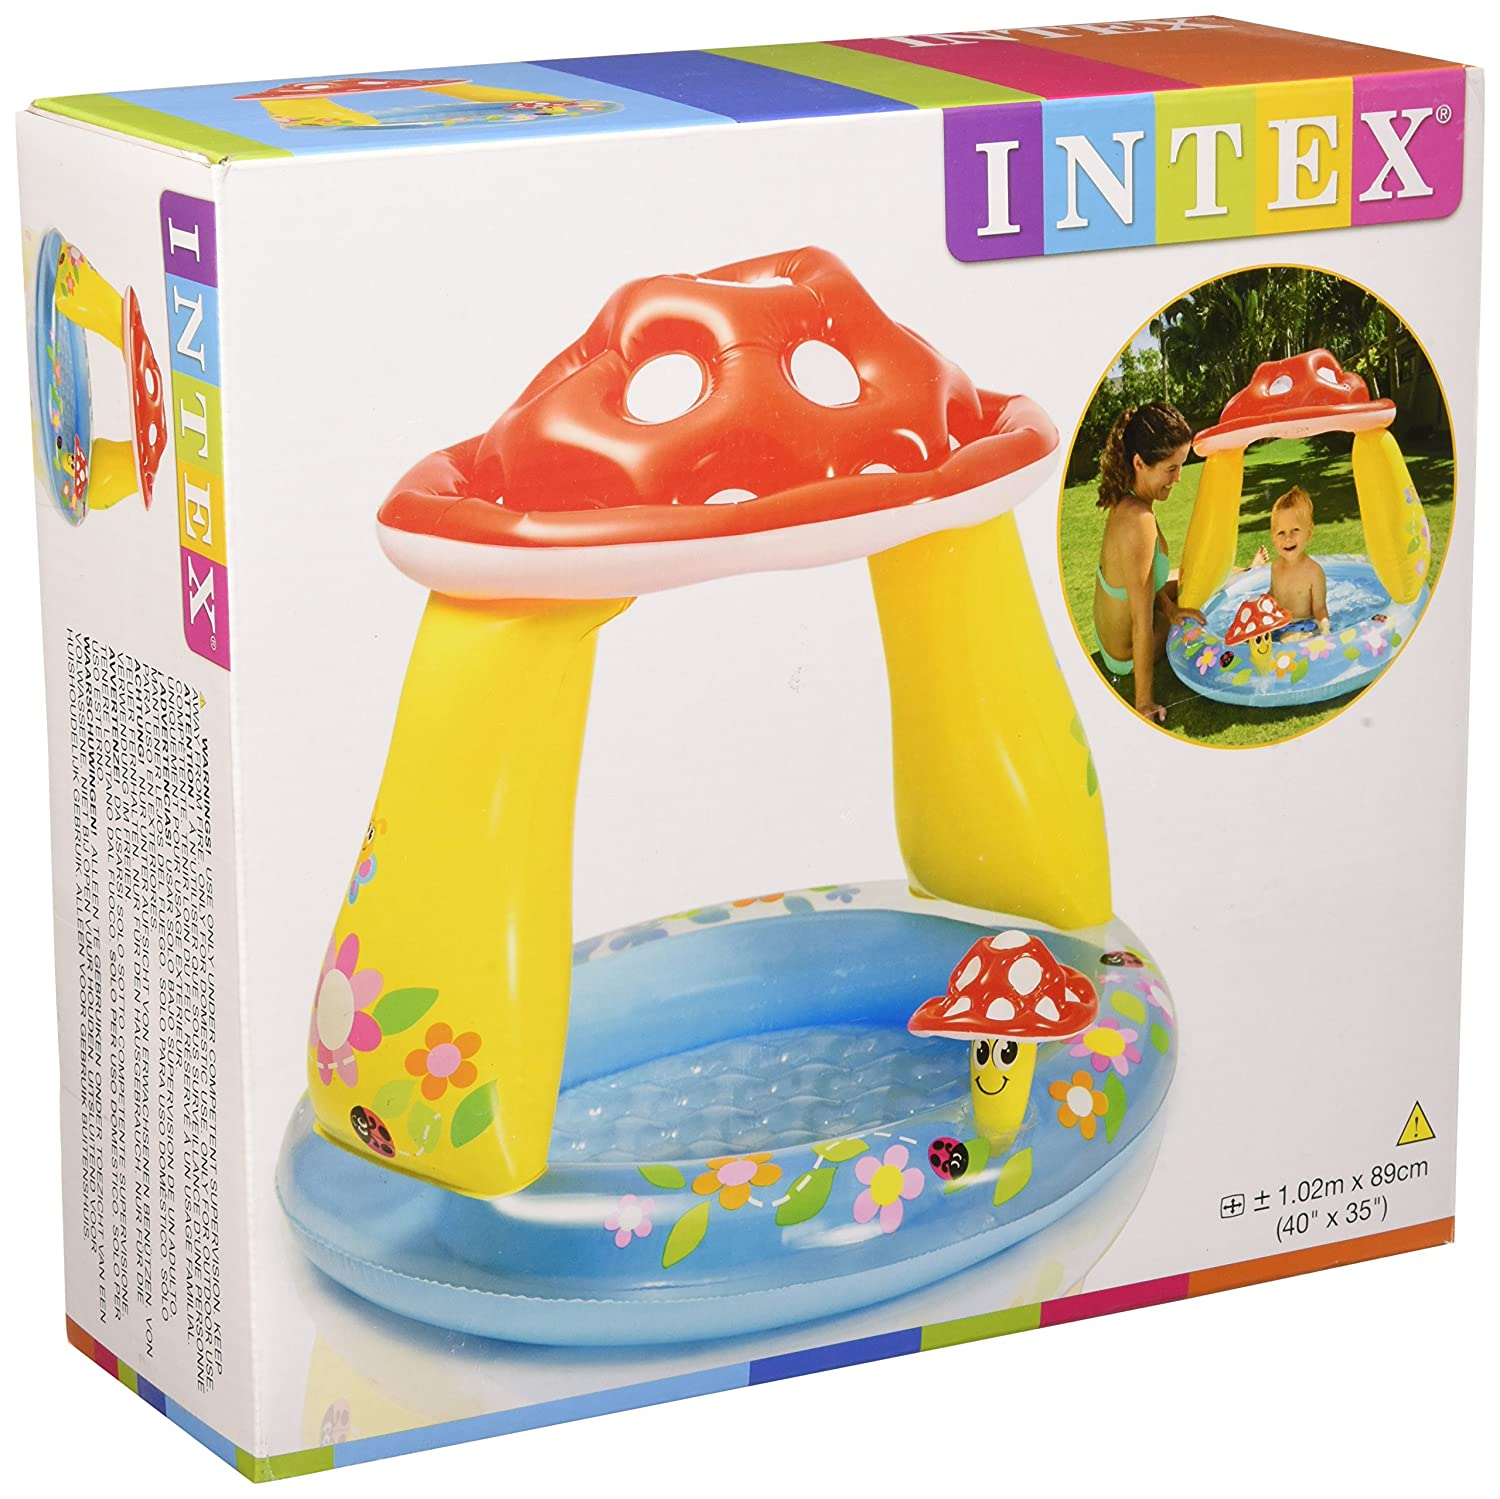 Intex 57114 - Piscina Baby Fungo, 102 x 89 cm, Blu/Rosso Intex Amazon IT 57114NP